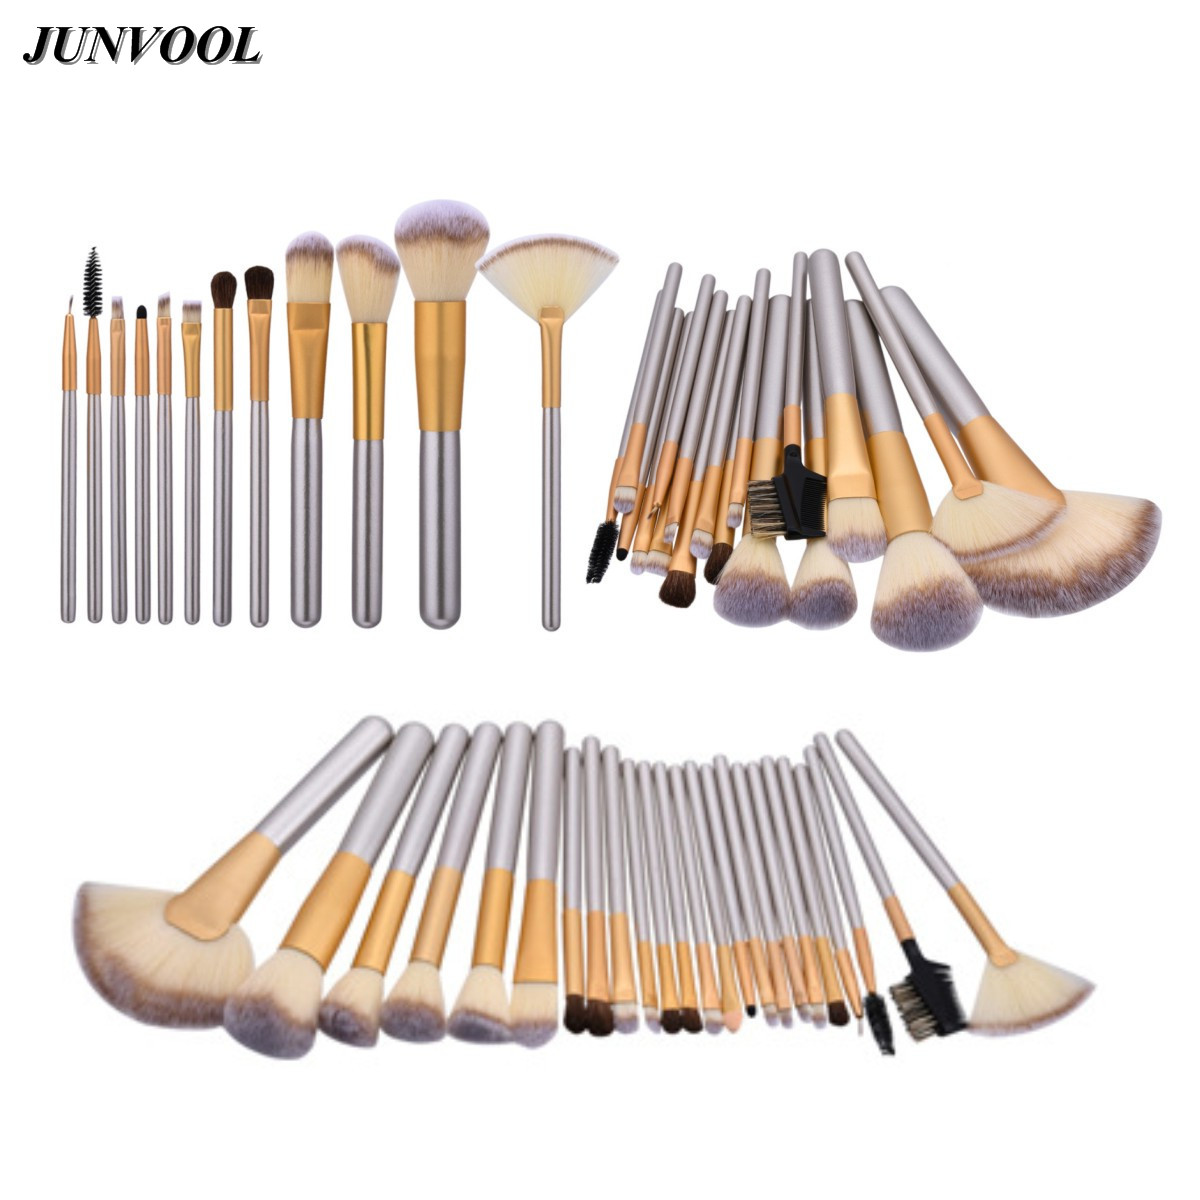 Fan Makeup Brushes Champagne Gold Classic Soft Synthetic Professional Cosmetic Make Up Foundation Powder Blush Eyeliner Brush 12 18 24pcs make up brush set soft synthetic professional cosmetic makeup foundation powder blush eyeliner brushes kit